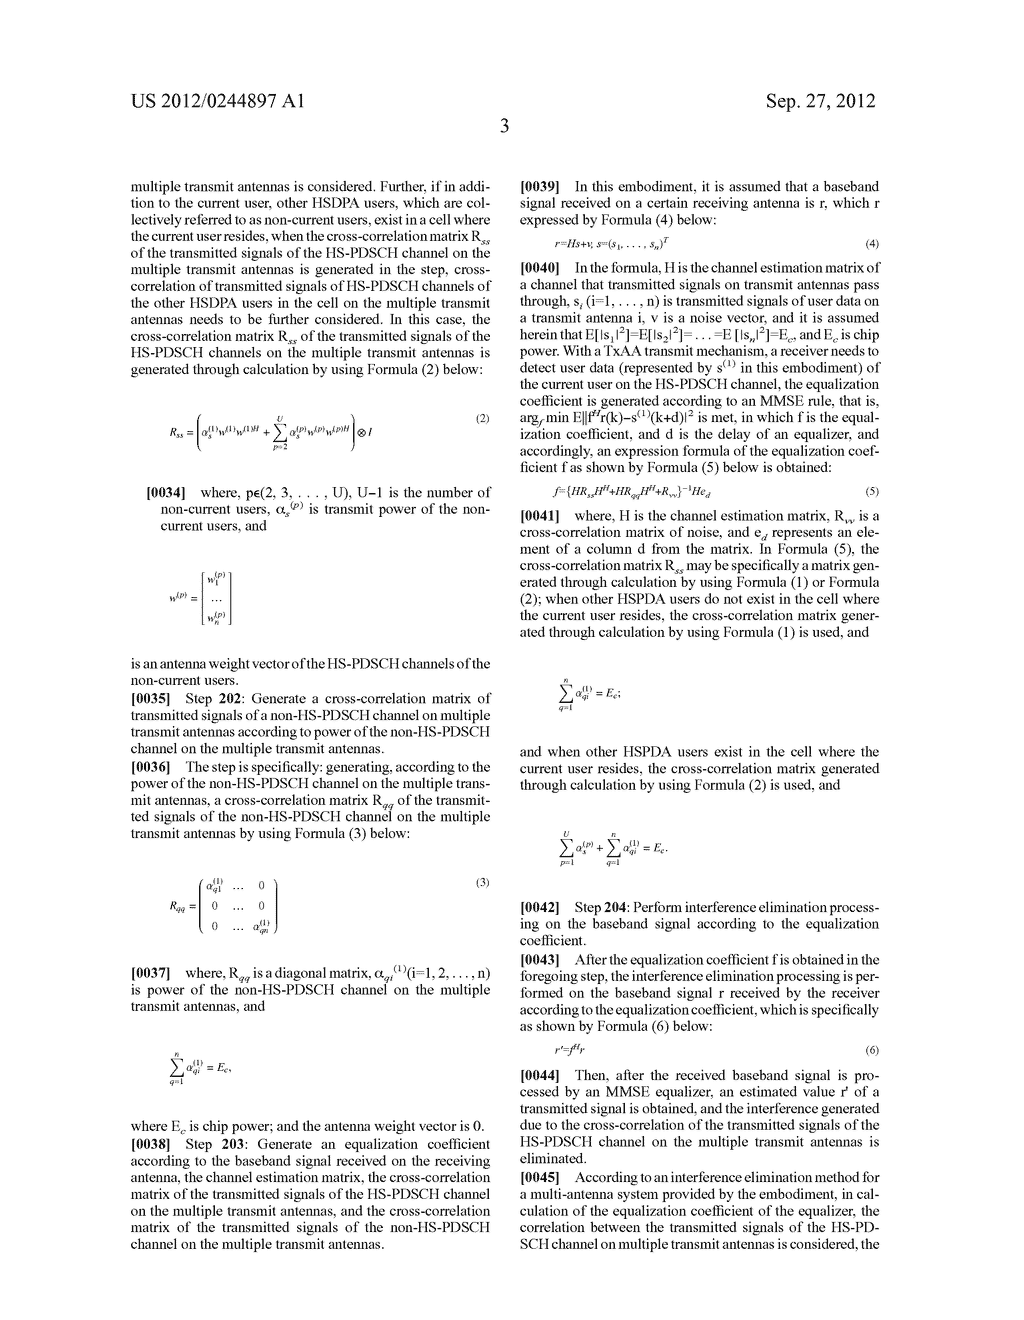 INTERFERENCE ELIMINATION METHOD AND APPARATUS FOR MULTI-ANTENNA SYSTEM - diagram, schematic, and image 09